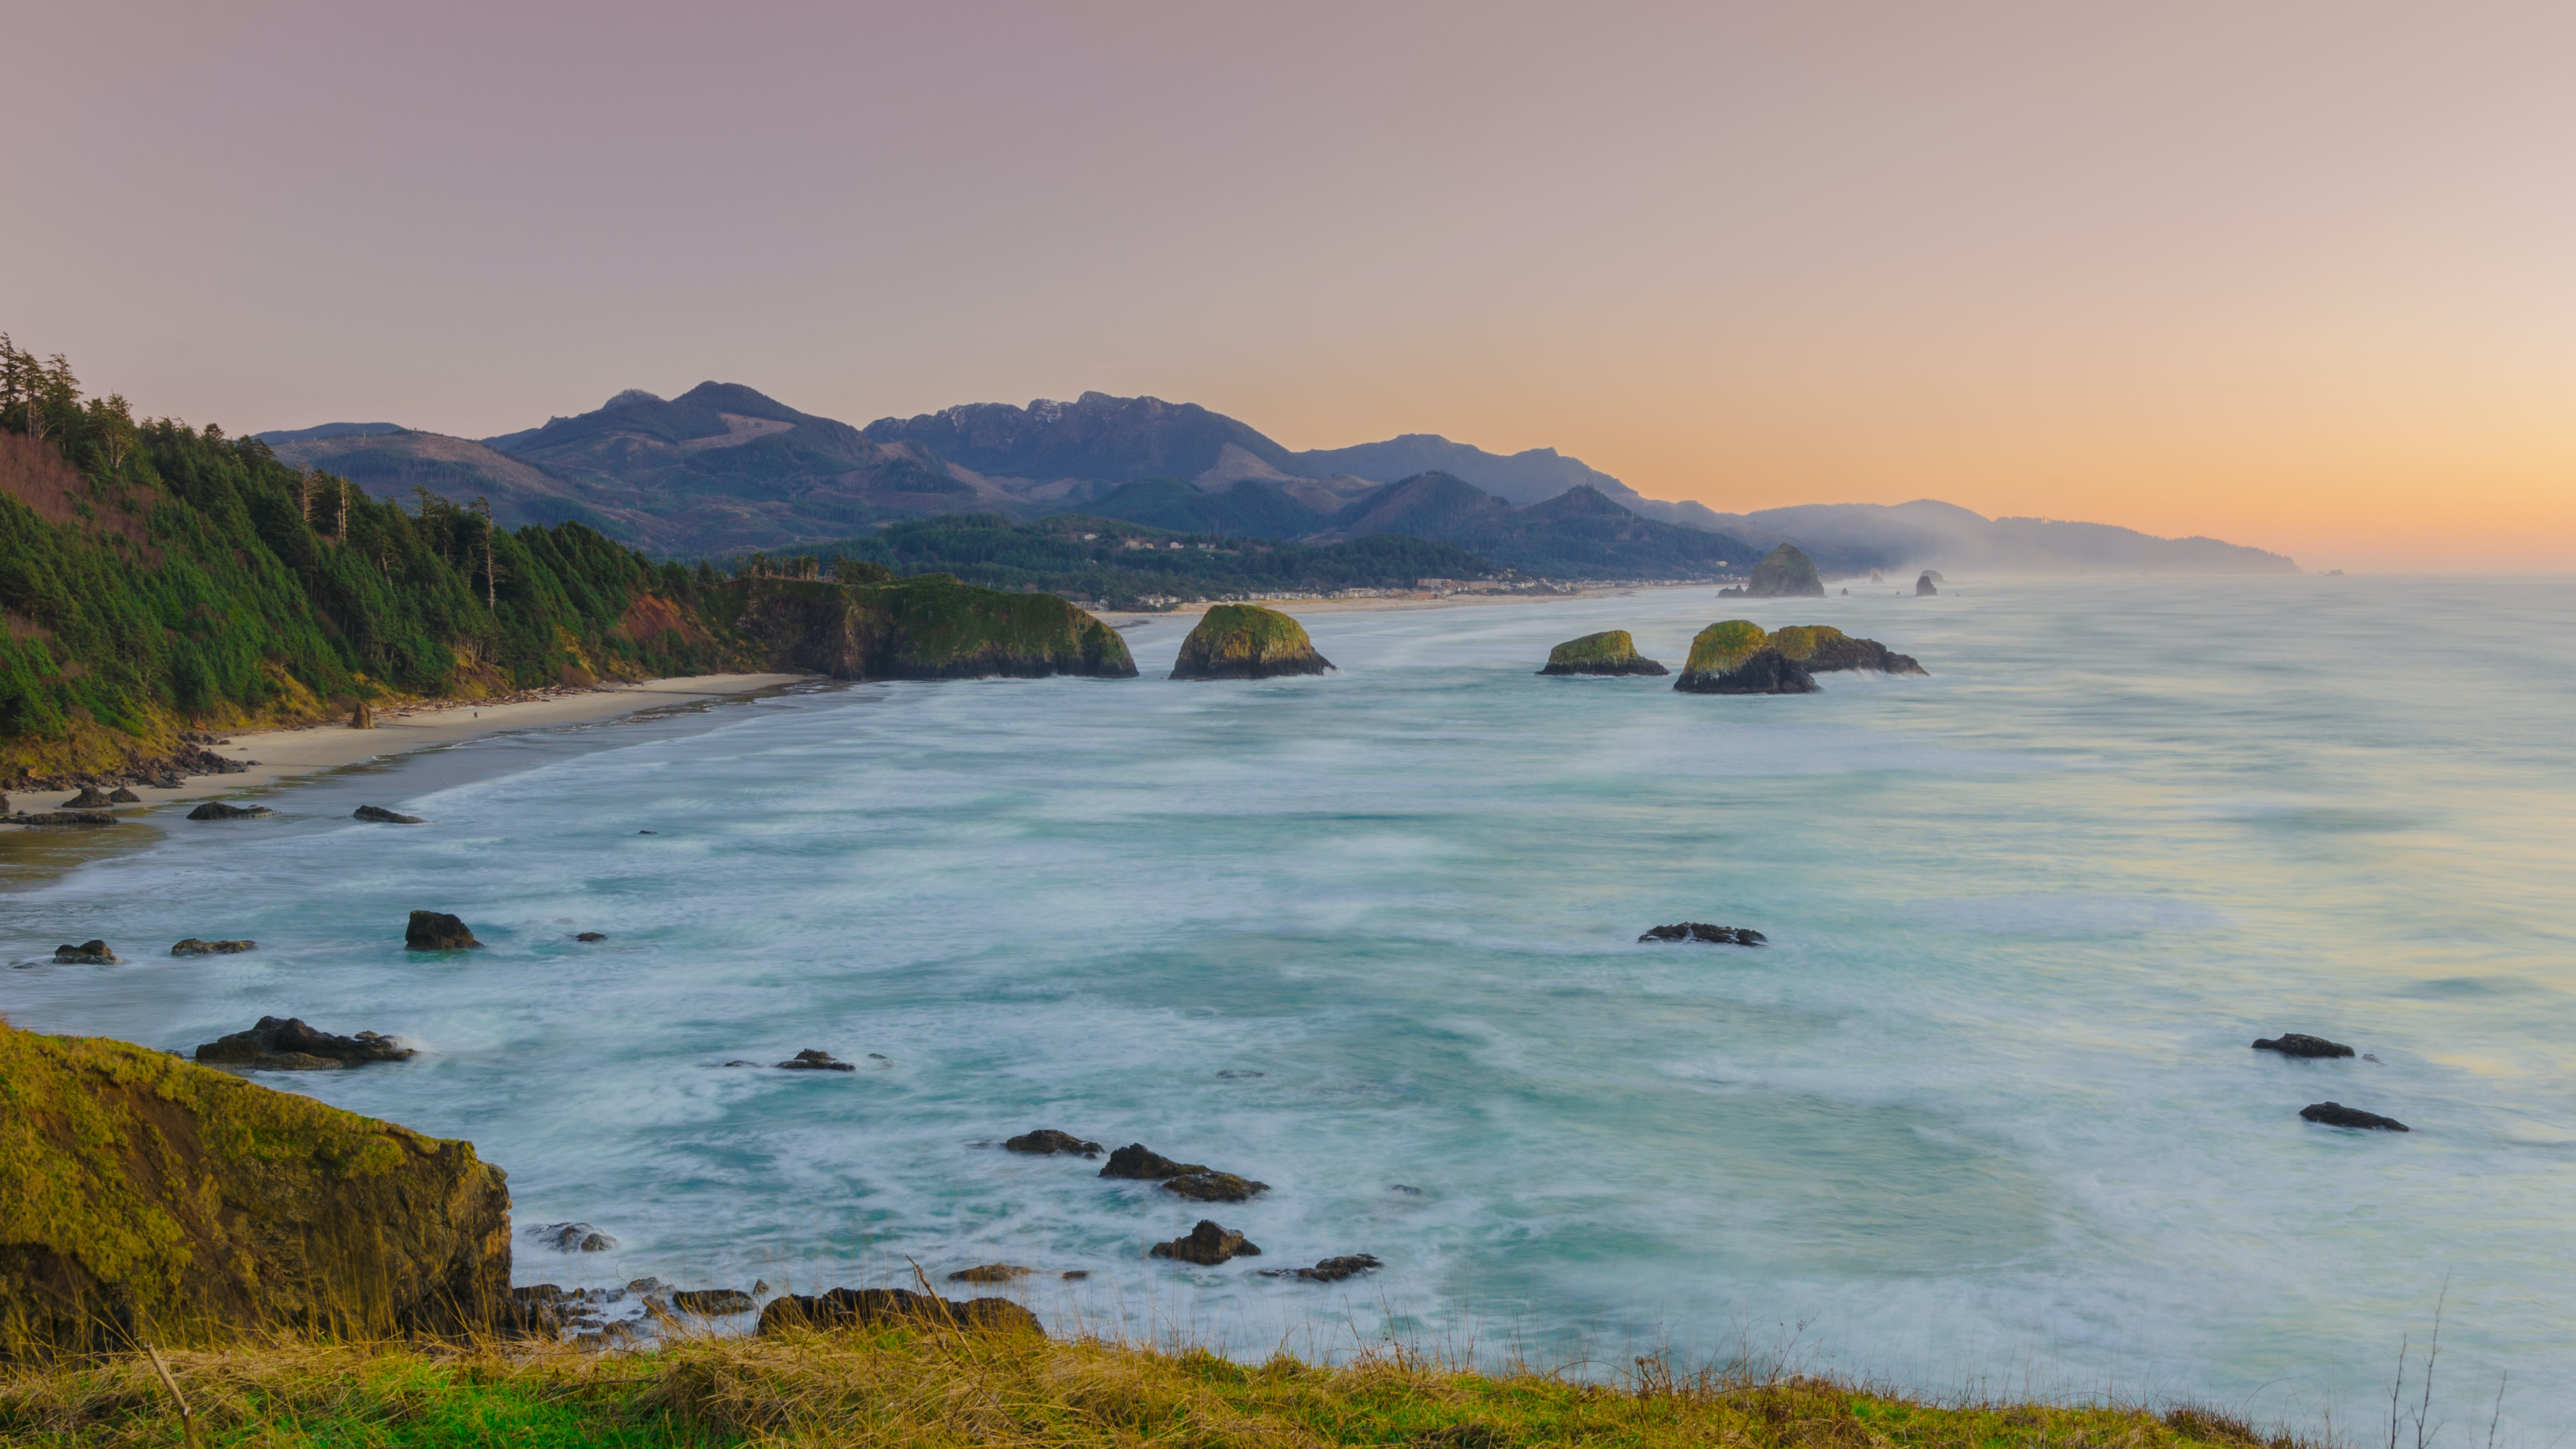 Ocean washing on a sandy beach with green cliffs in Ecola State Park at sunset